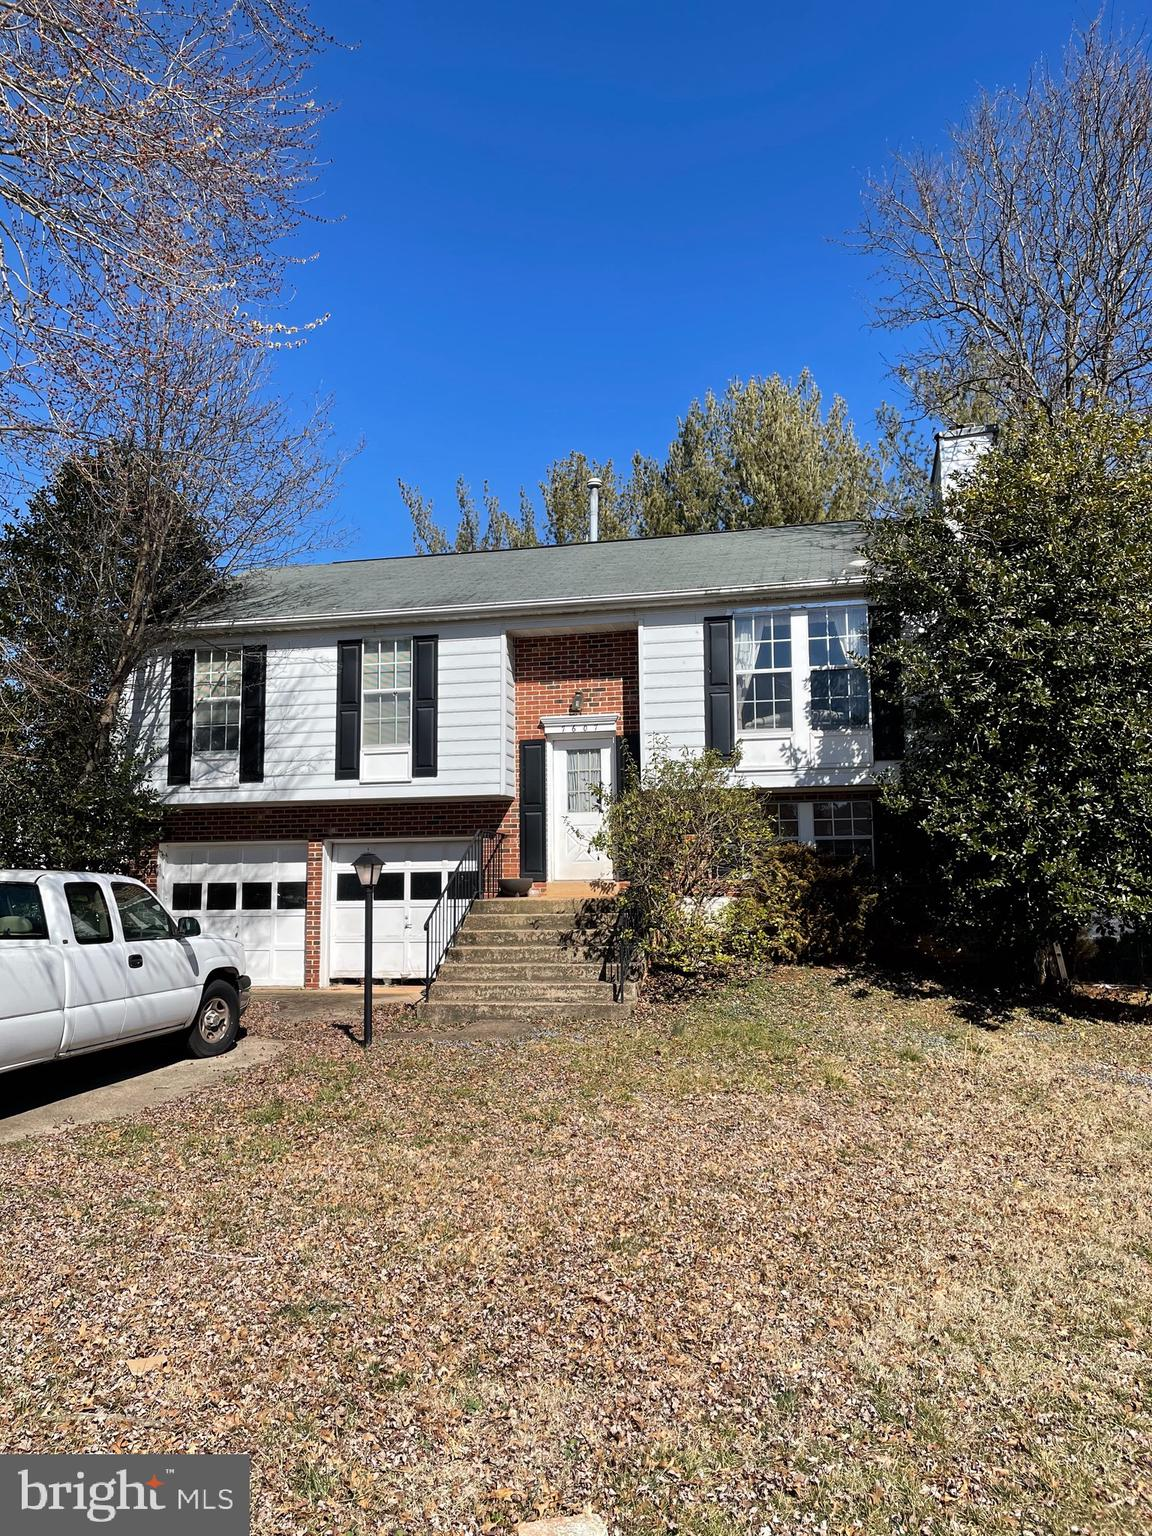 NO HOA!!!  Under 400K! Located in the nice and quiet neighborhood of Sudley Manor!   House needs som